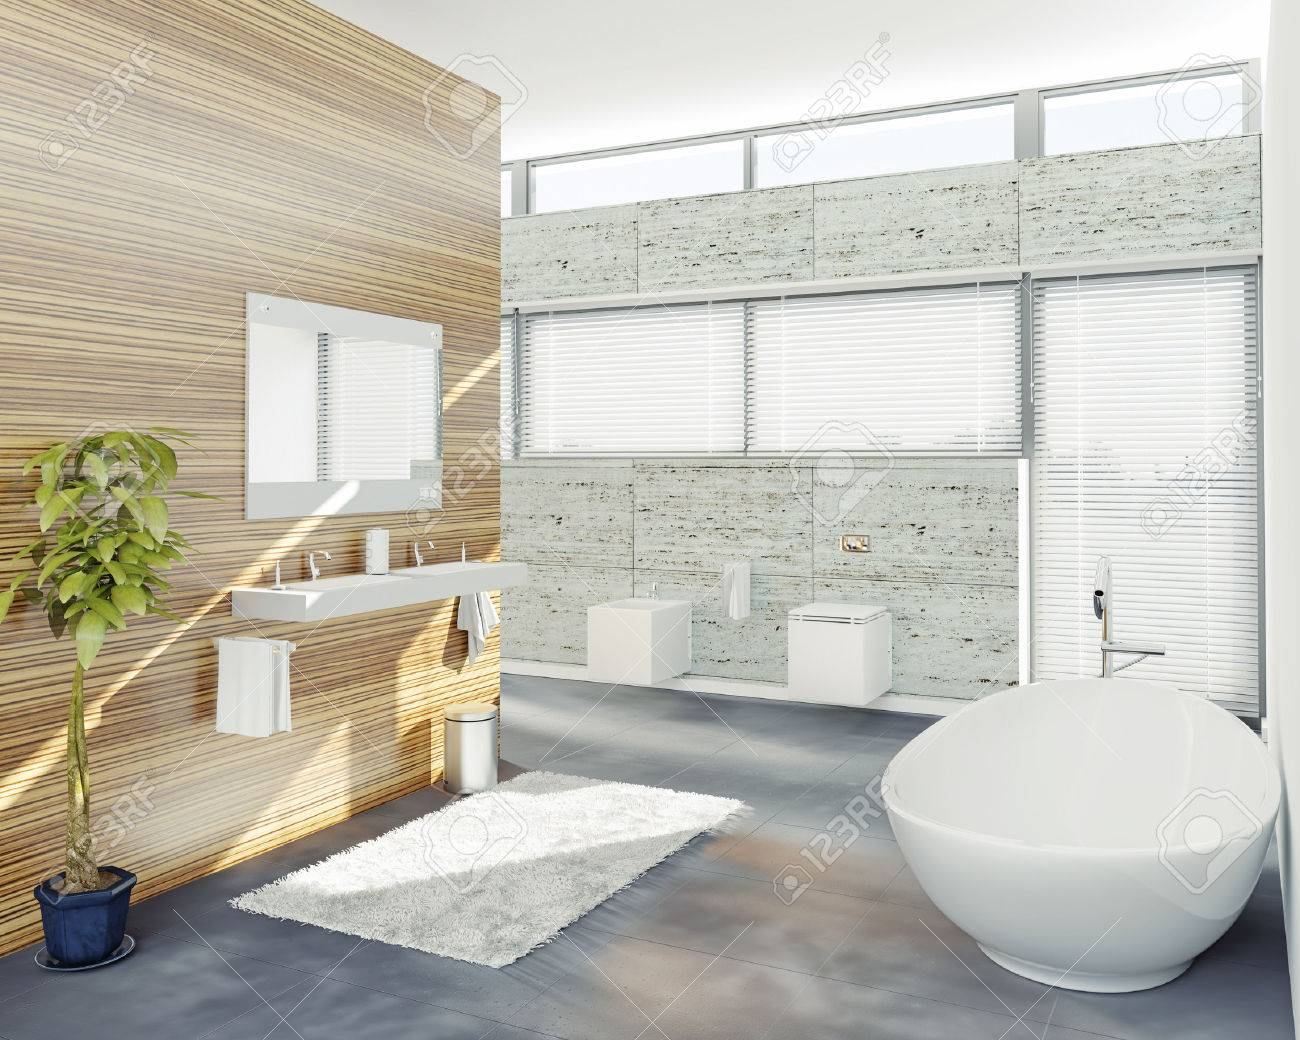 Modern Bathroom Design (3D Concept) Stock Photo, Picture And Royalty ...